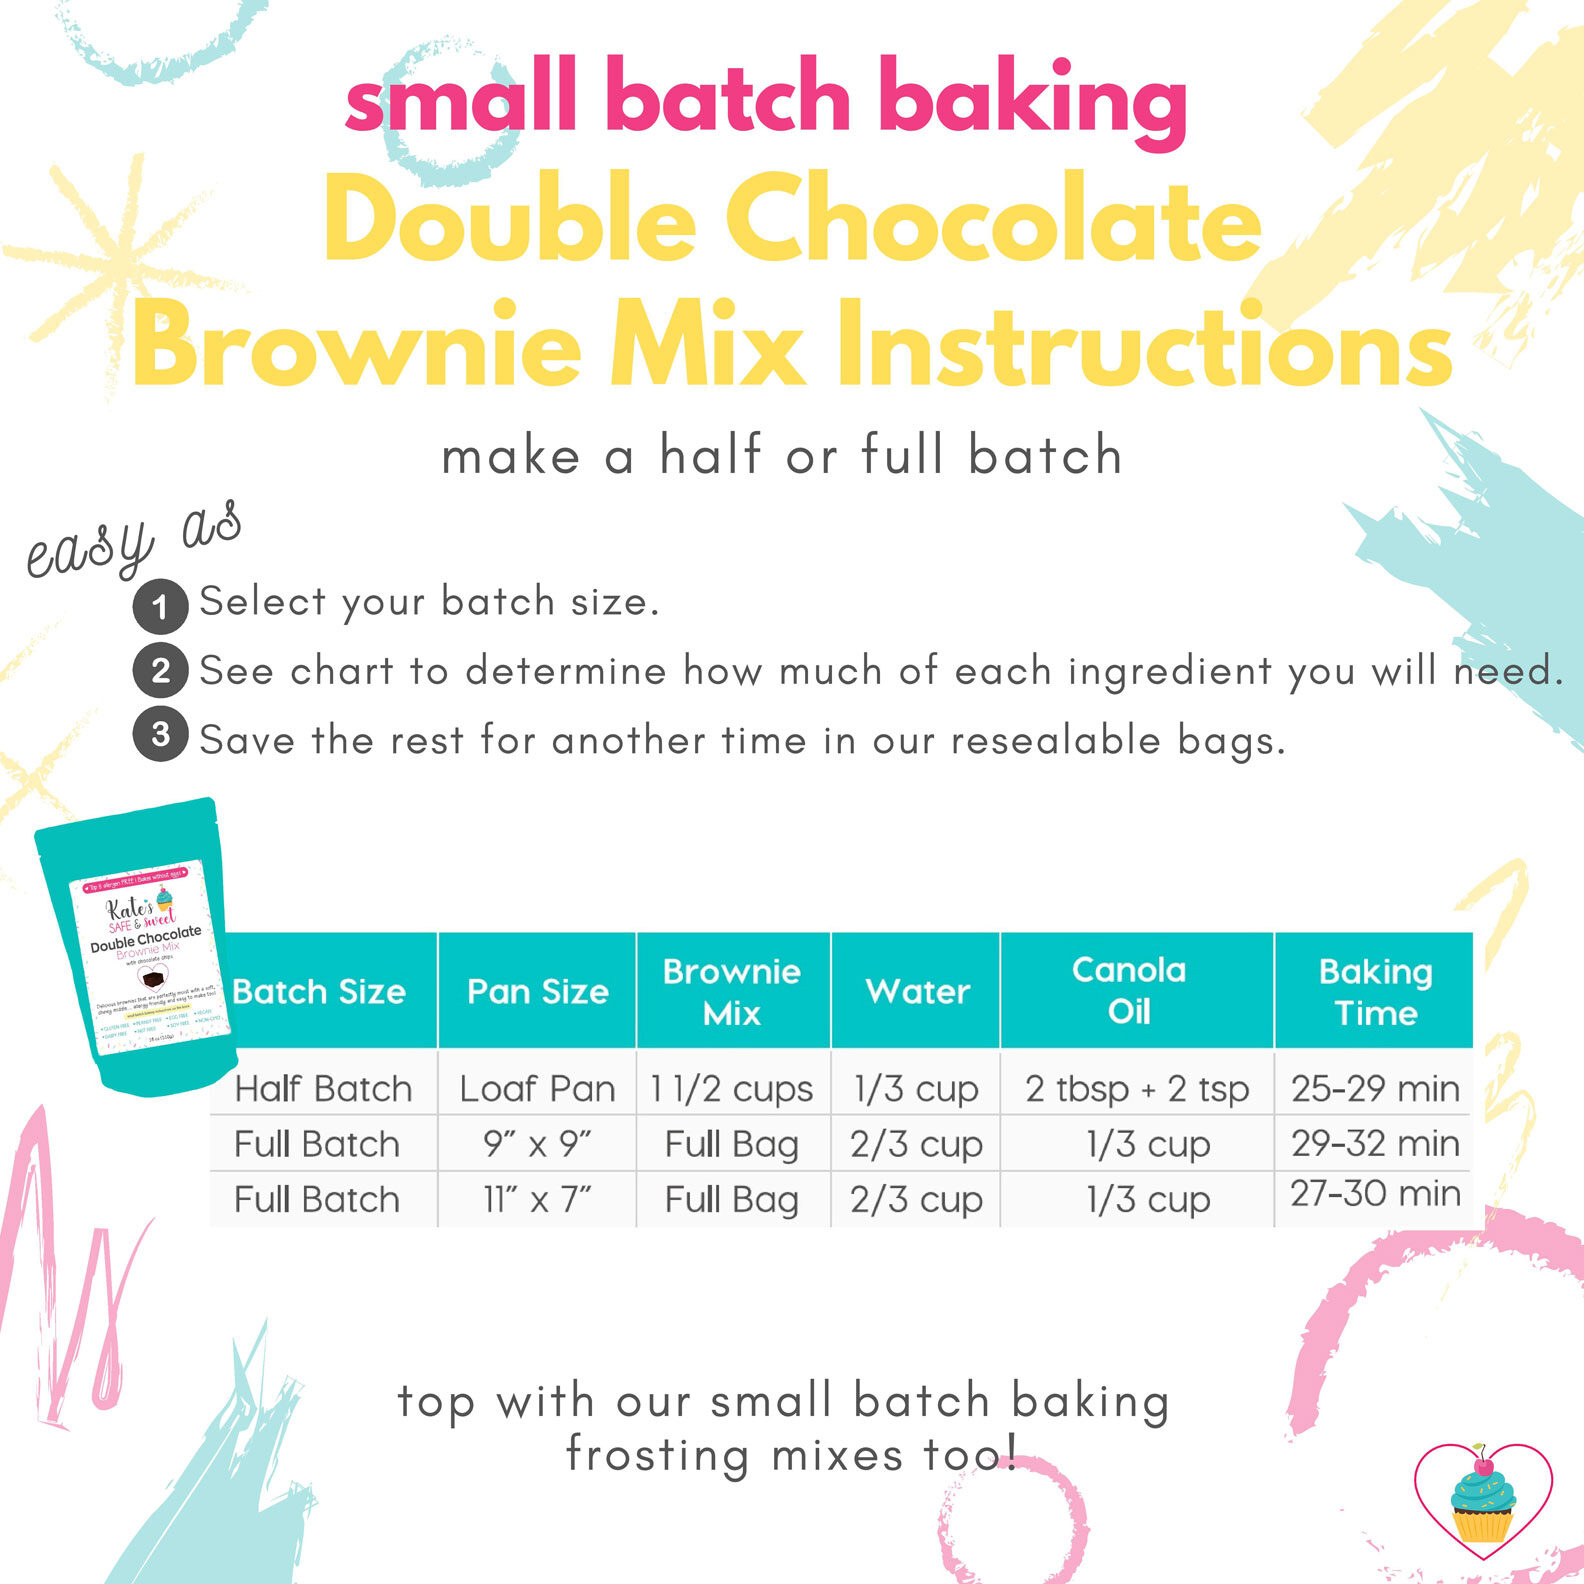 Kate's-Safe-and-Sweet---Small-Batch-Baking---Brownie-Mix-Instructions